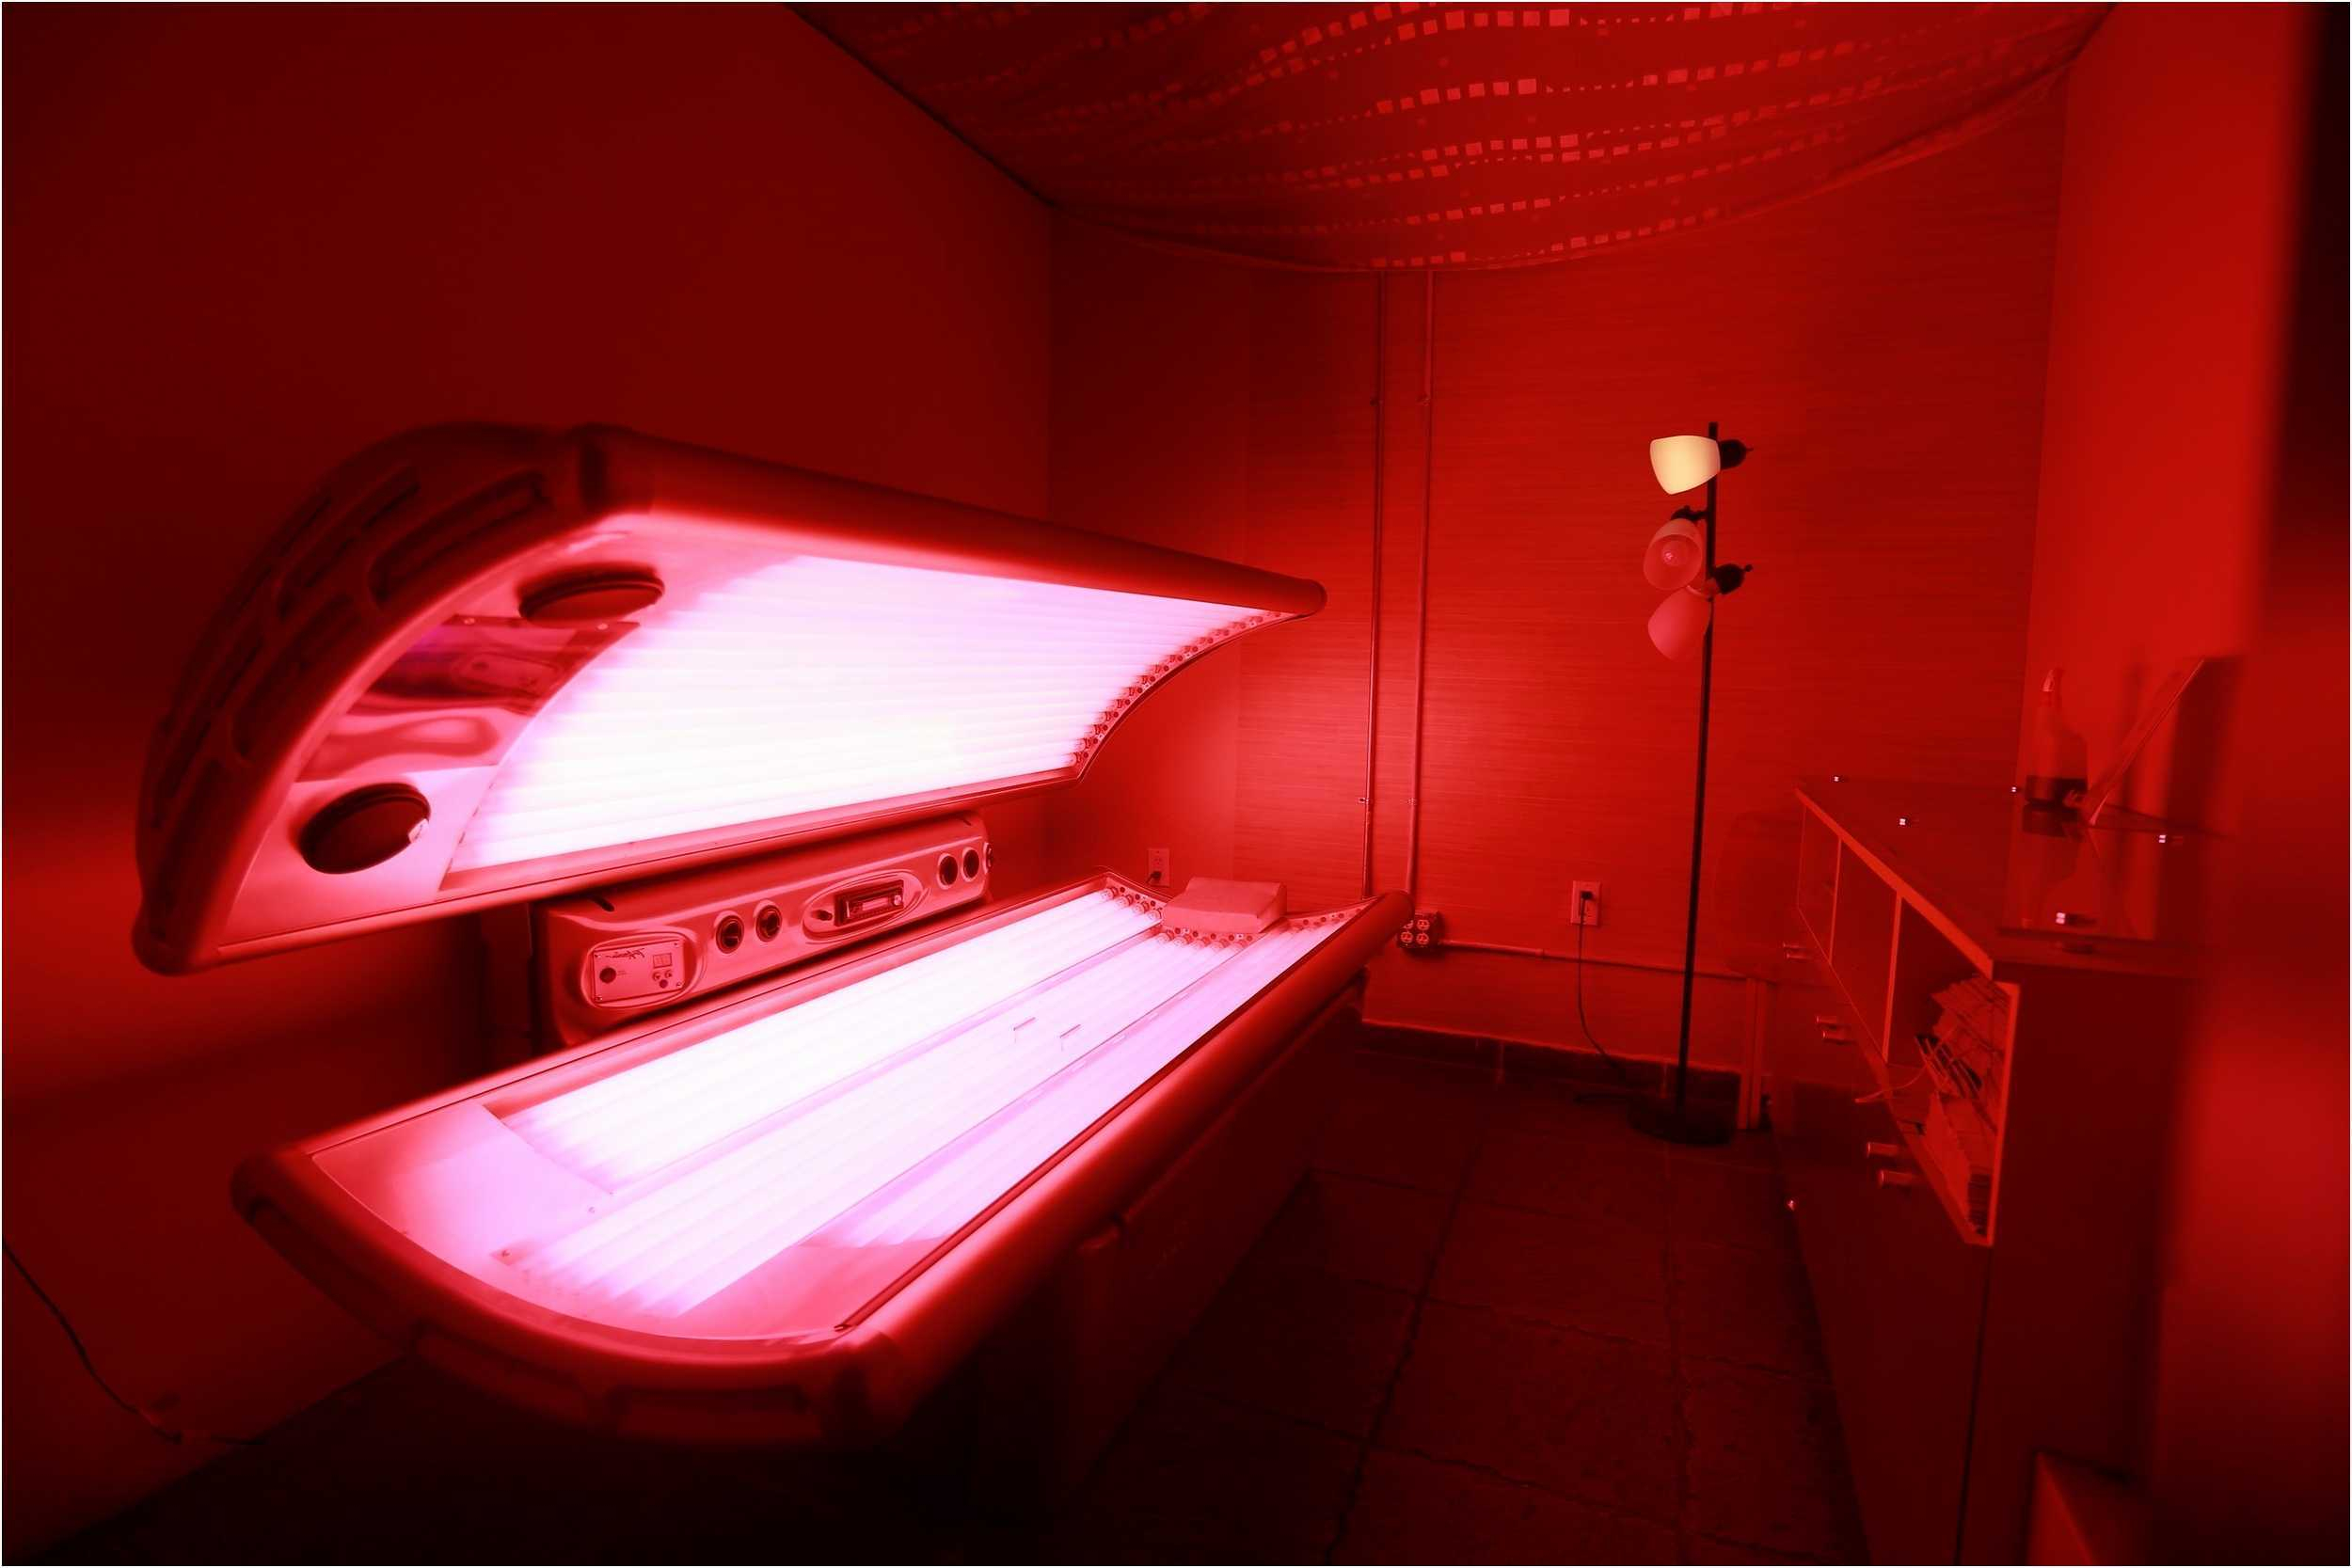 Red Light Bulbs For Tanning Bed Bulbs Ideas